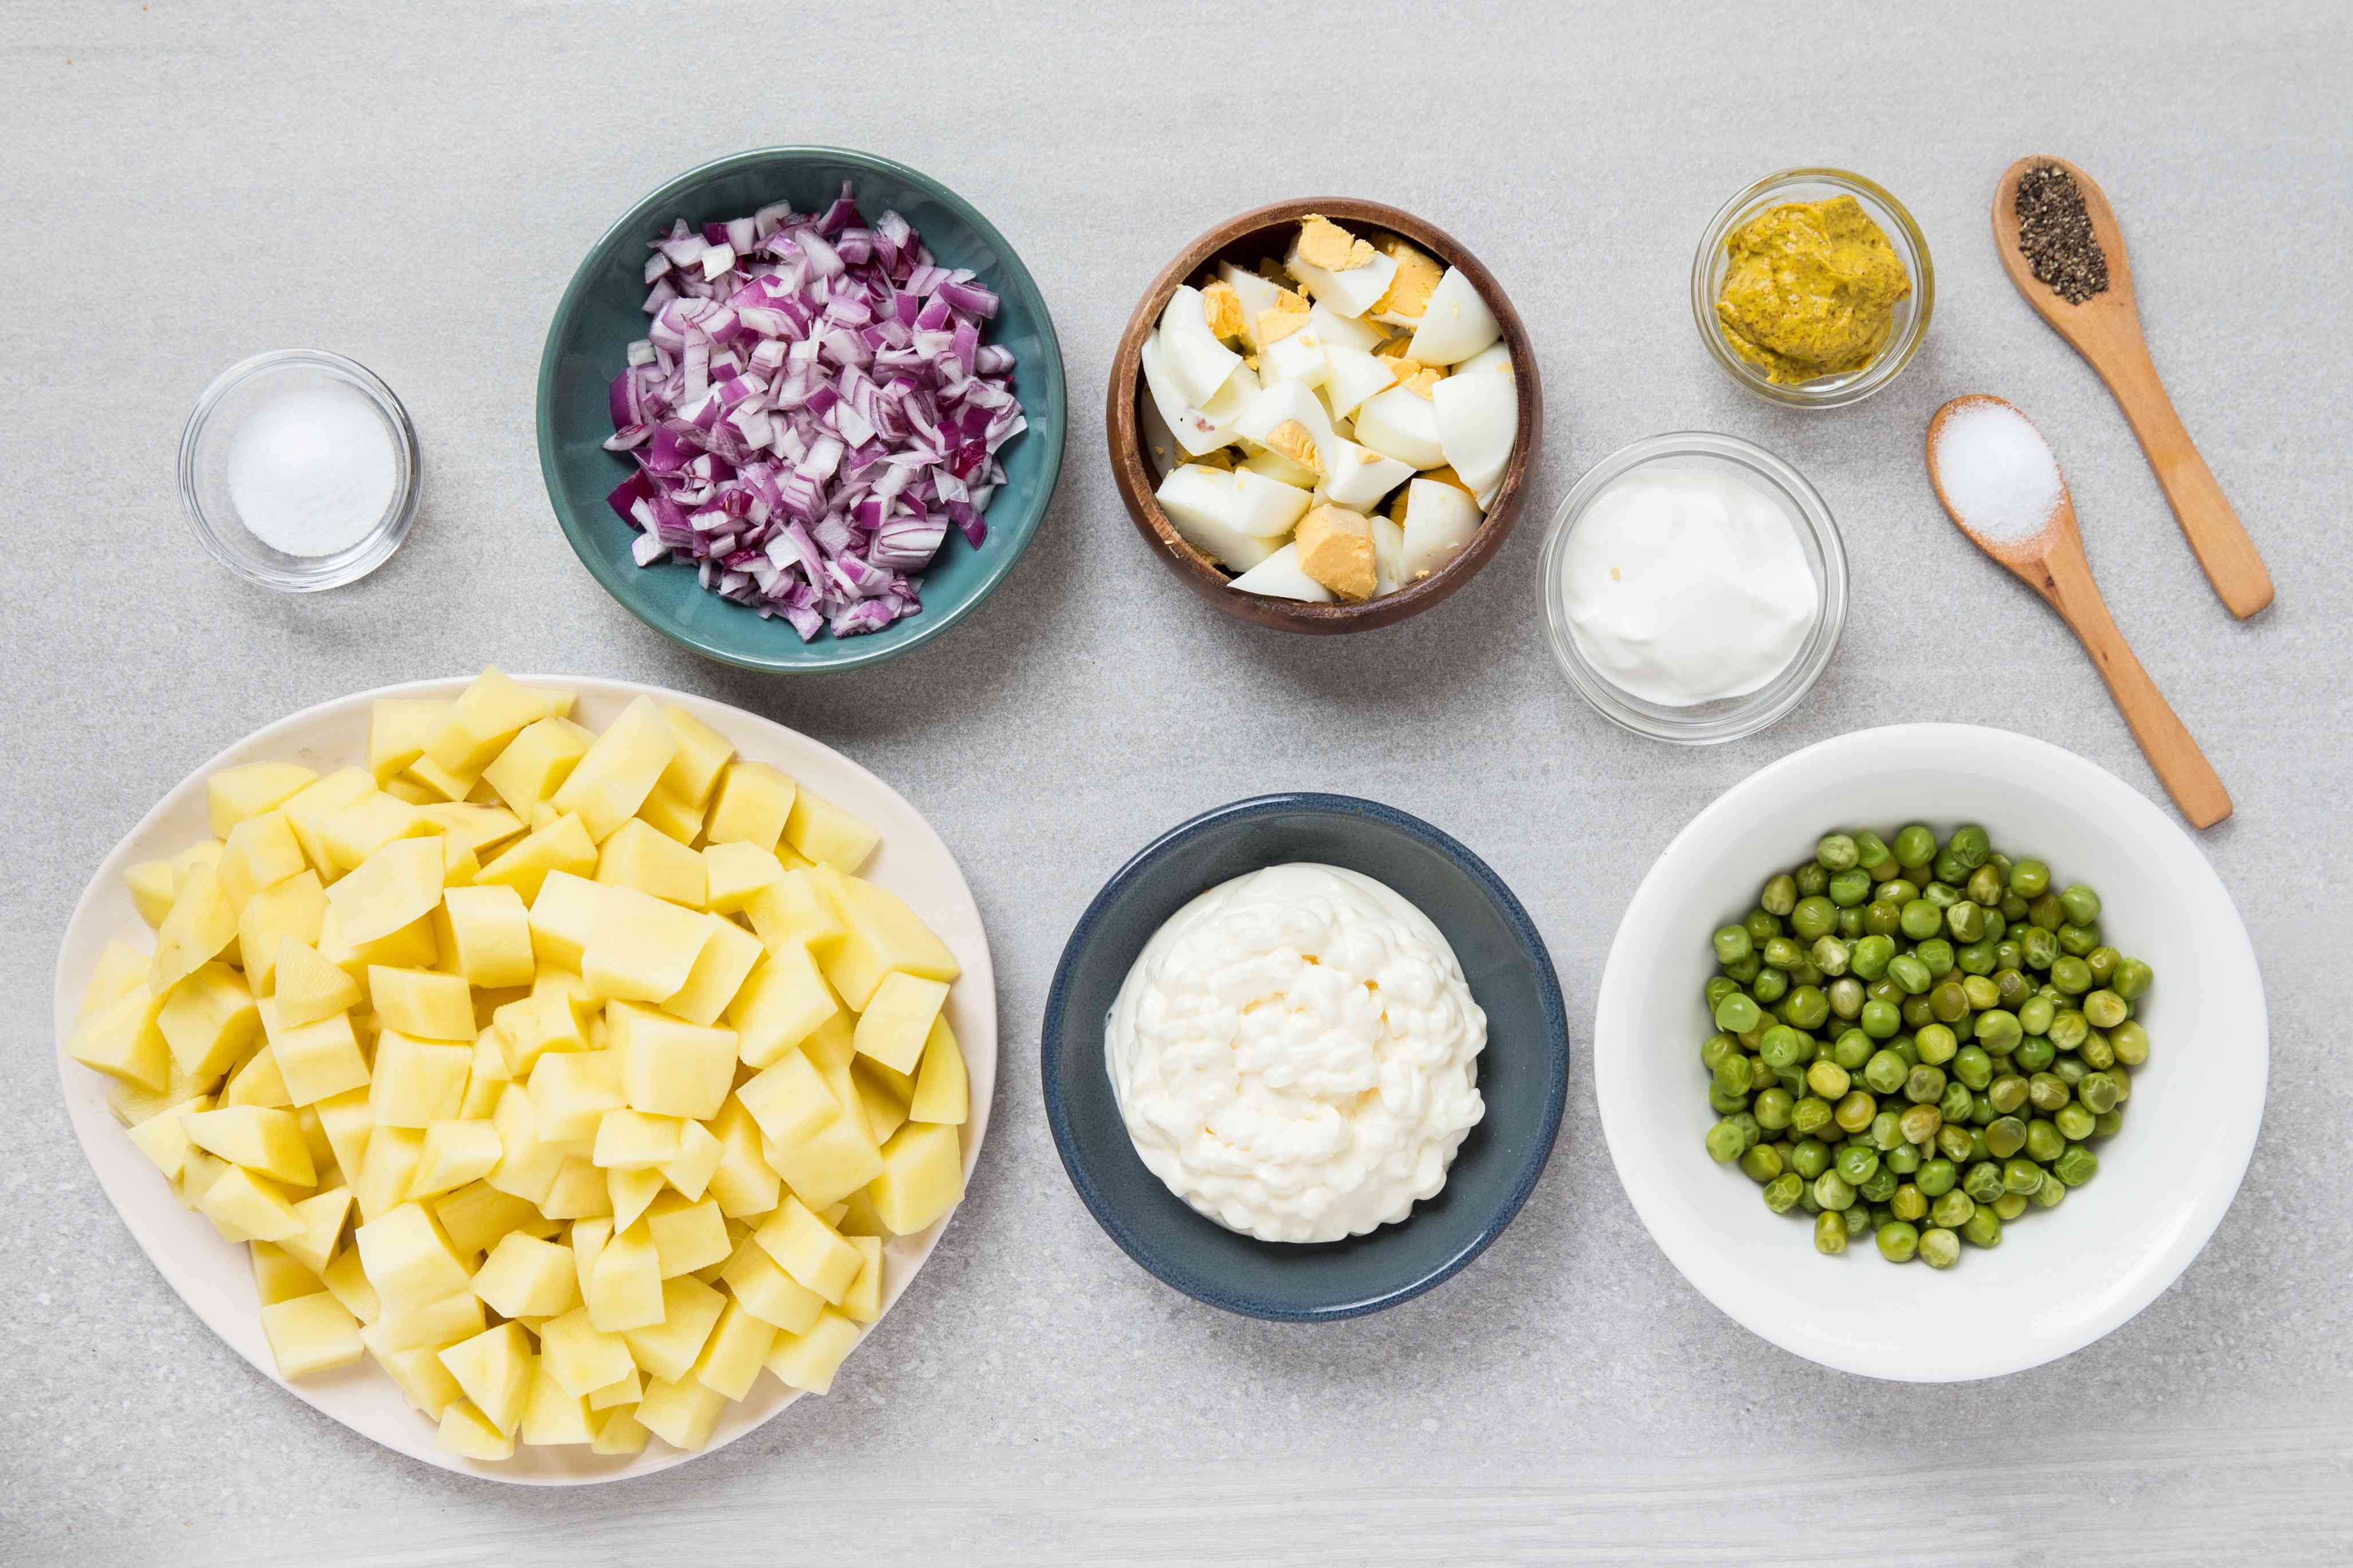 Potato Salad With Eggs and Peas ingredients